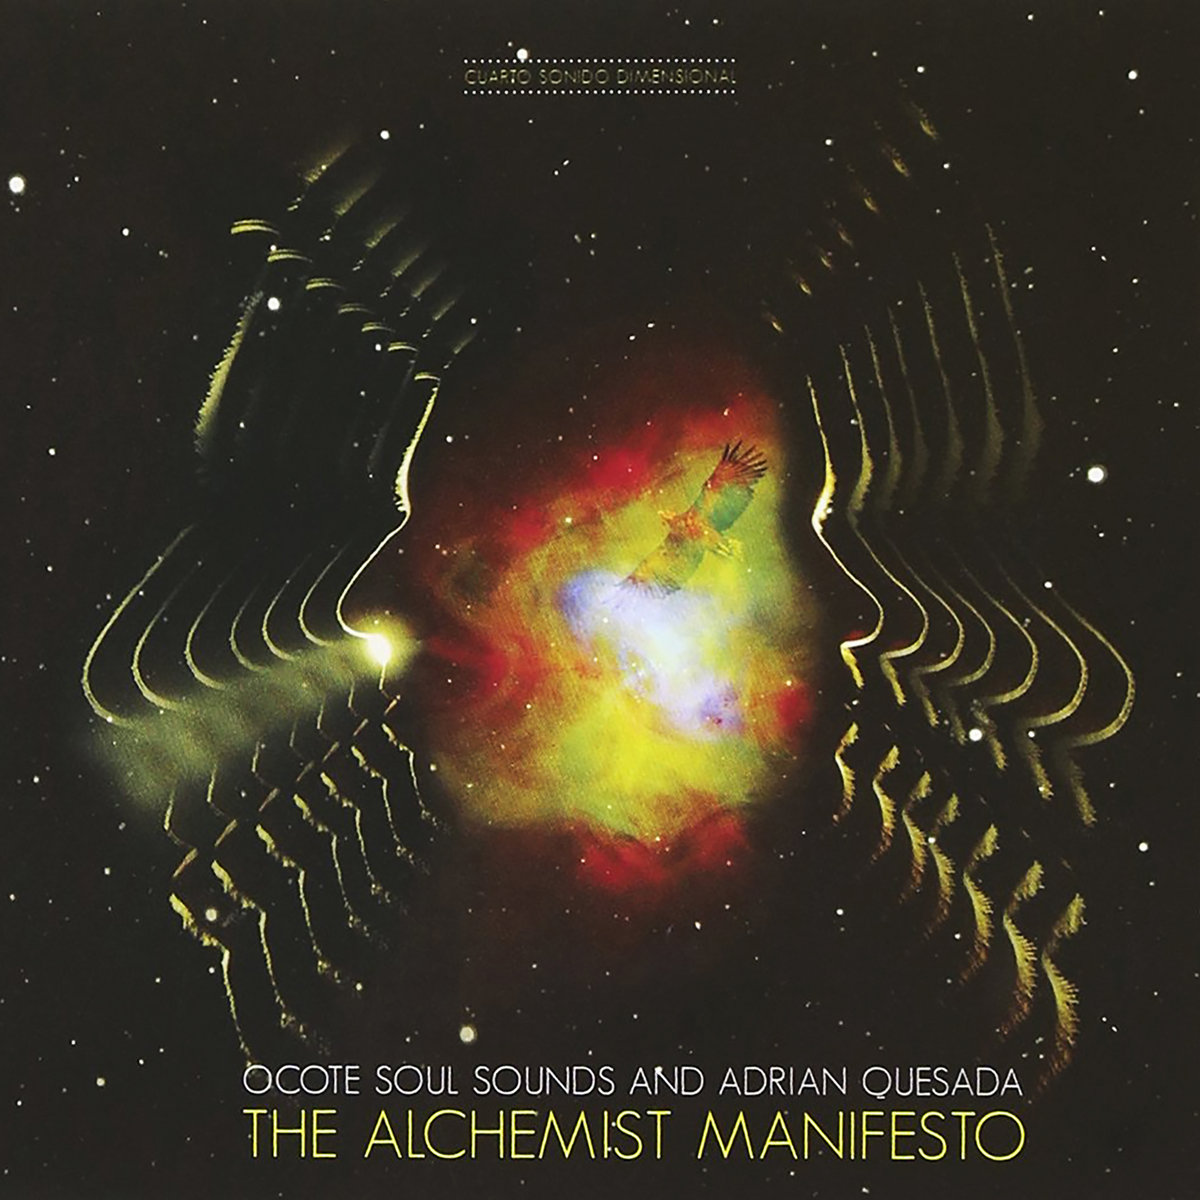 the alchemist manifesto ocote soul sounds from the alchemist manifesto by ocote soul sounds